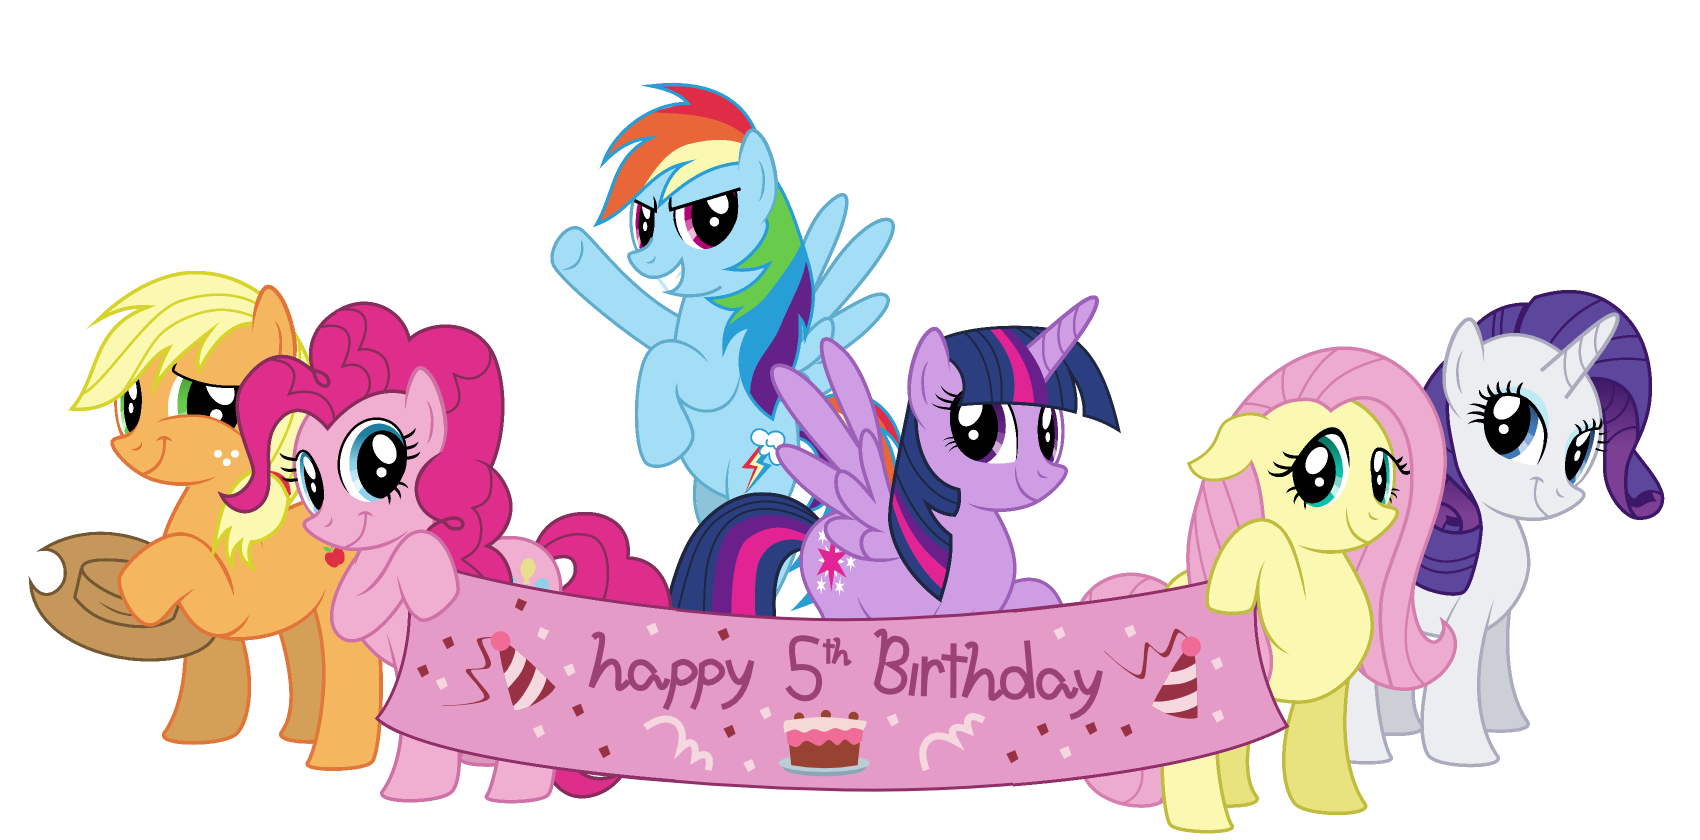 My litte pony happy birthday words clipart graphic transparent download Happy 5th birthday, MLP:FiM! - Visual Fan Art - MLP Forums graphic transparent download